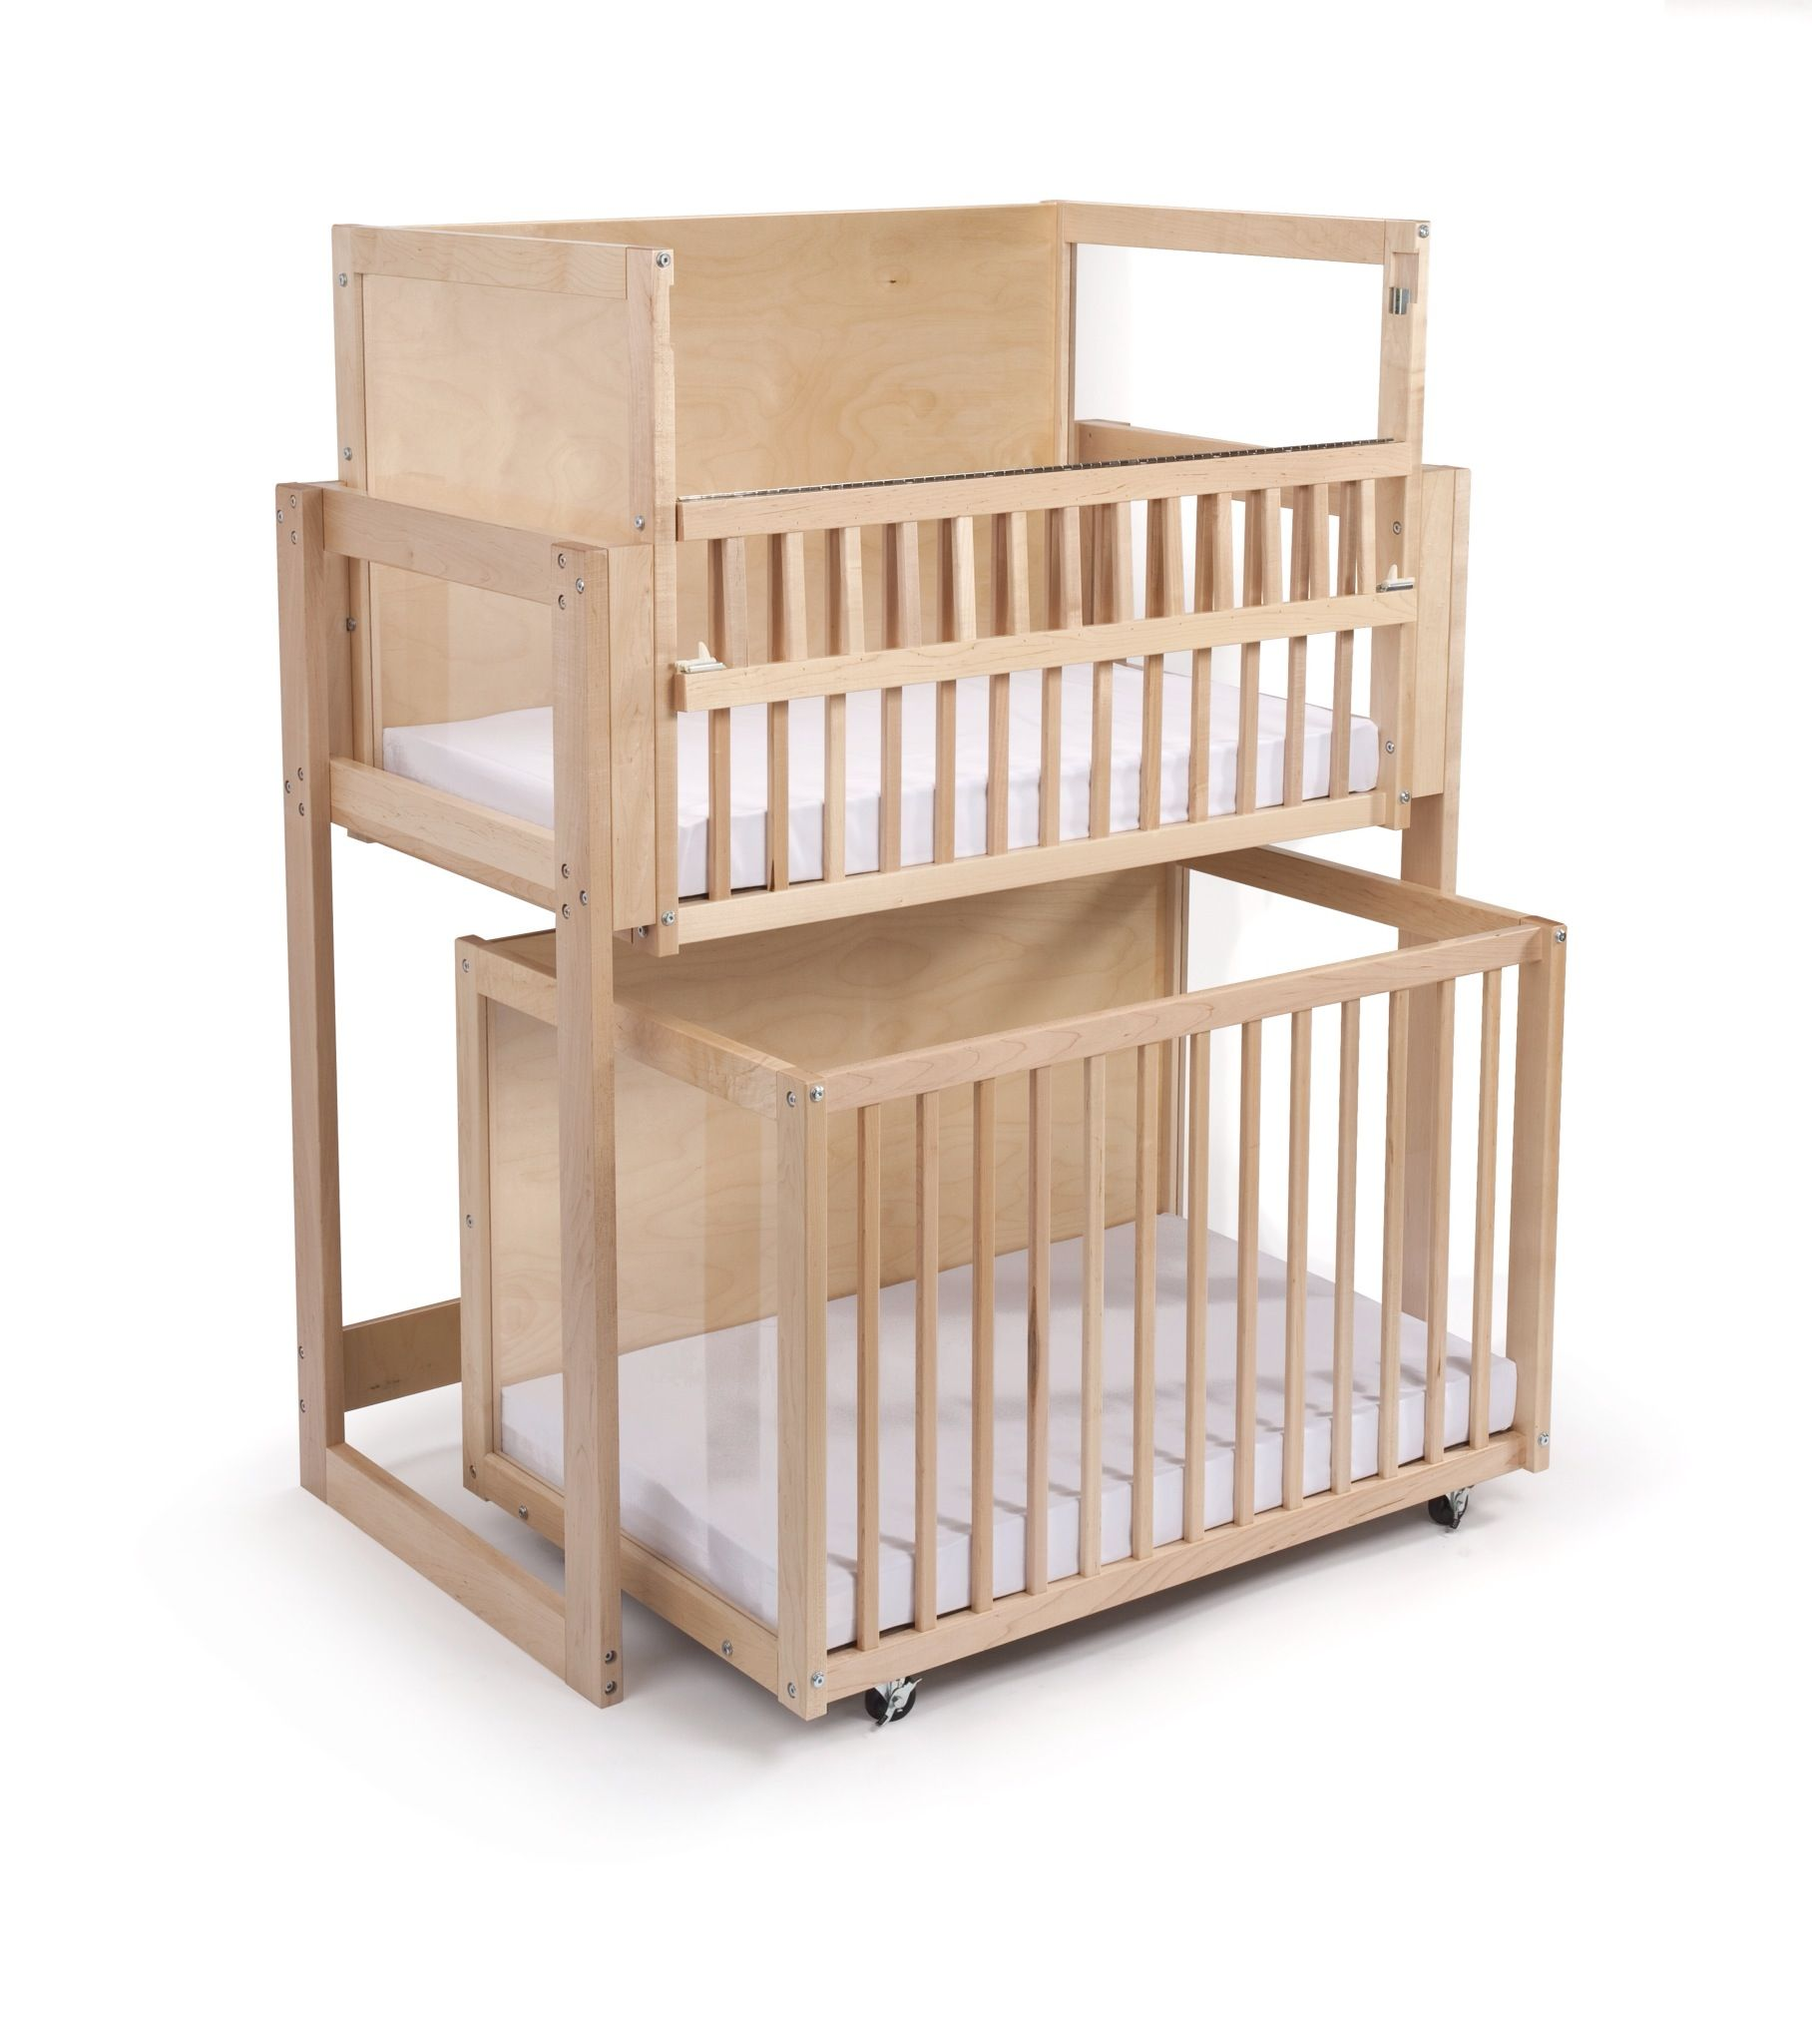 Best Double Decker Bunk Bed Stacked Cribs Must Save Space 400 x 300